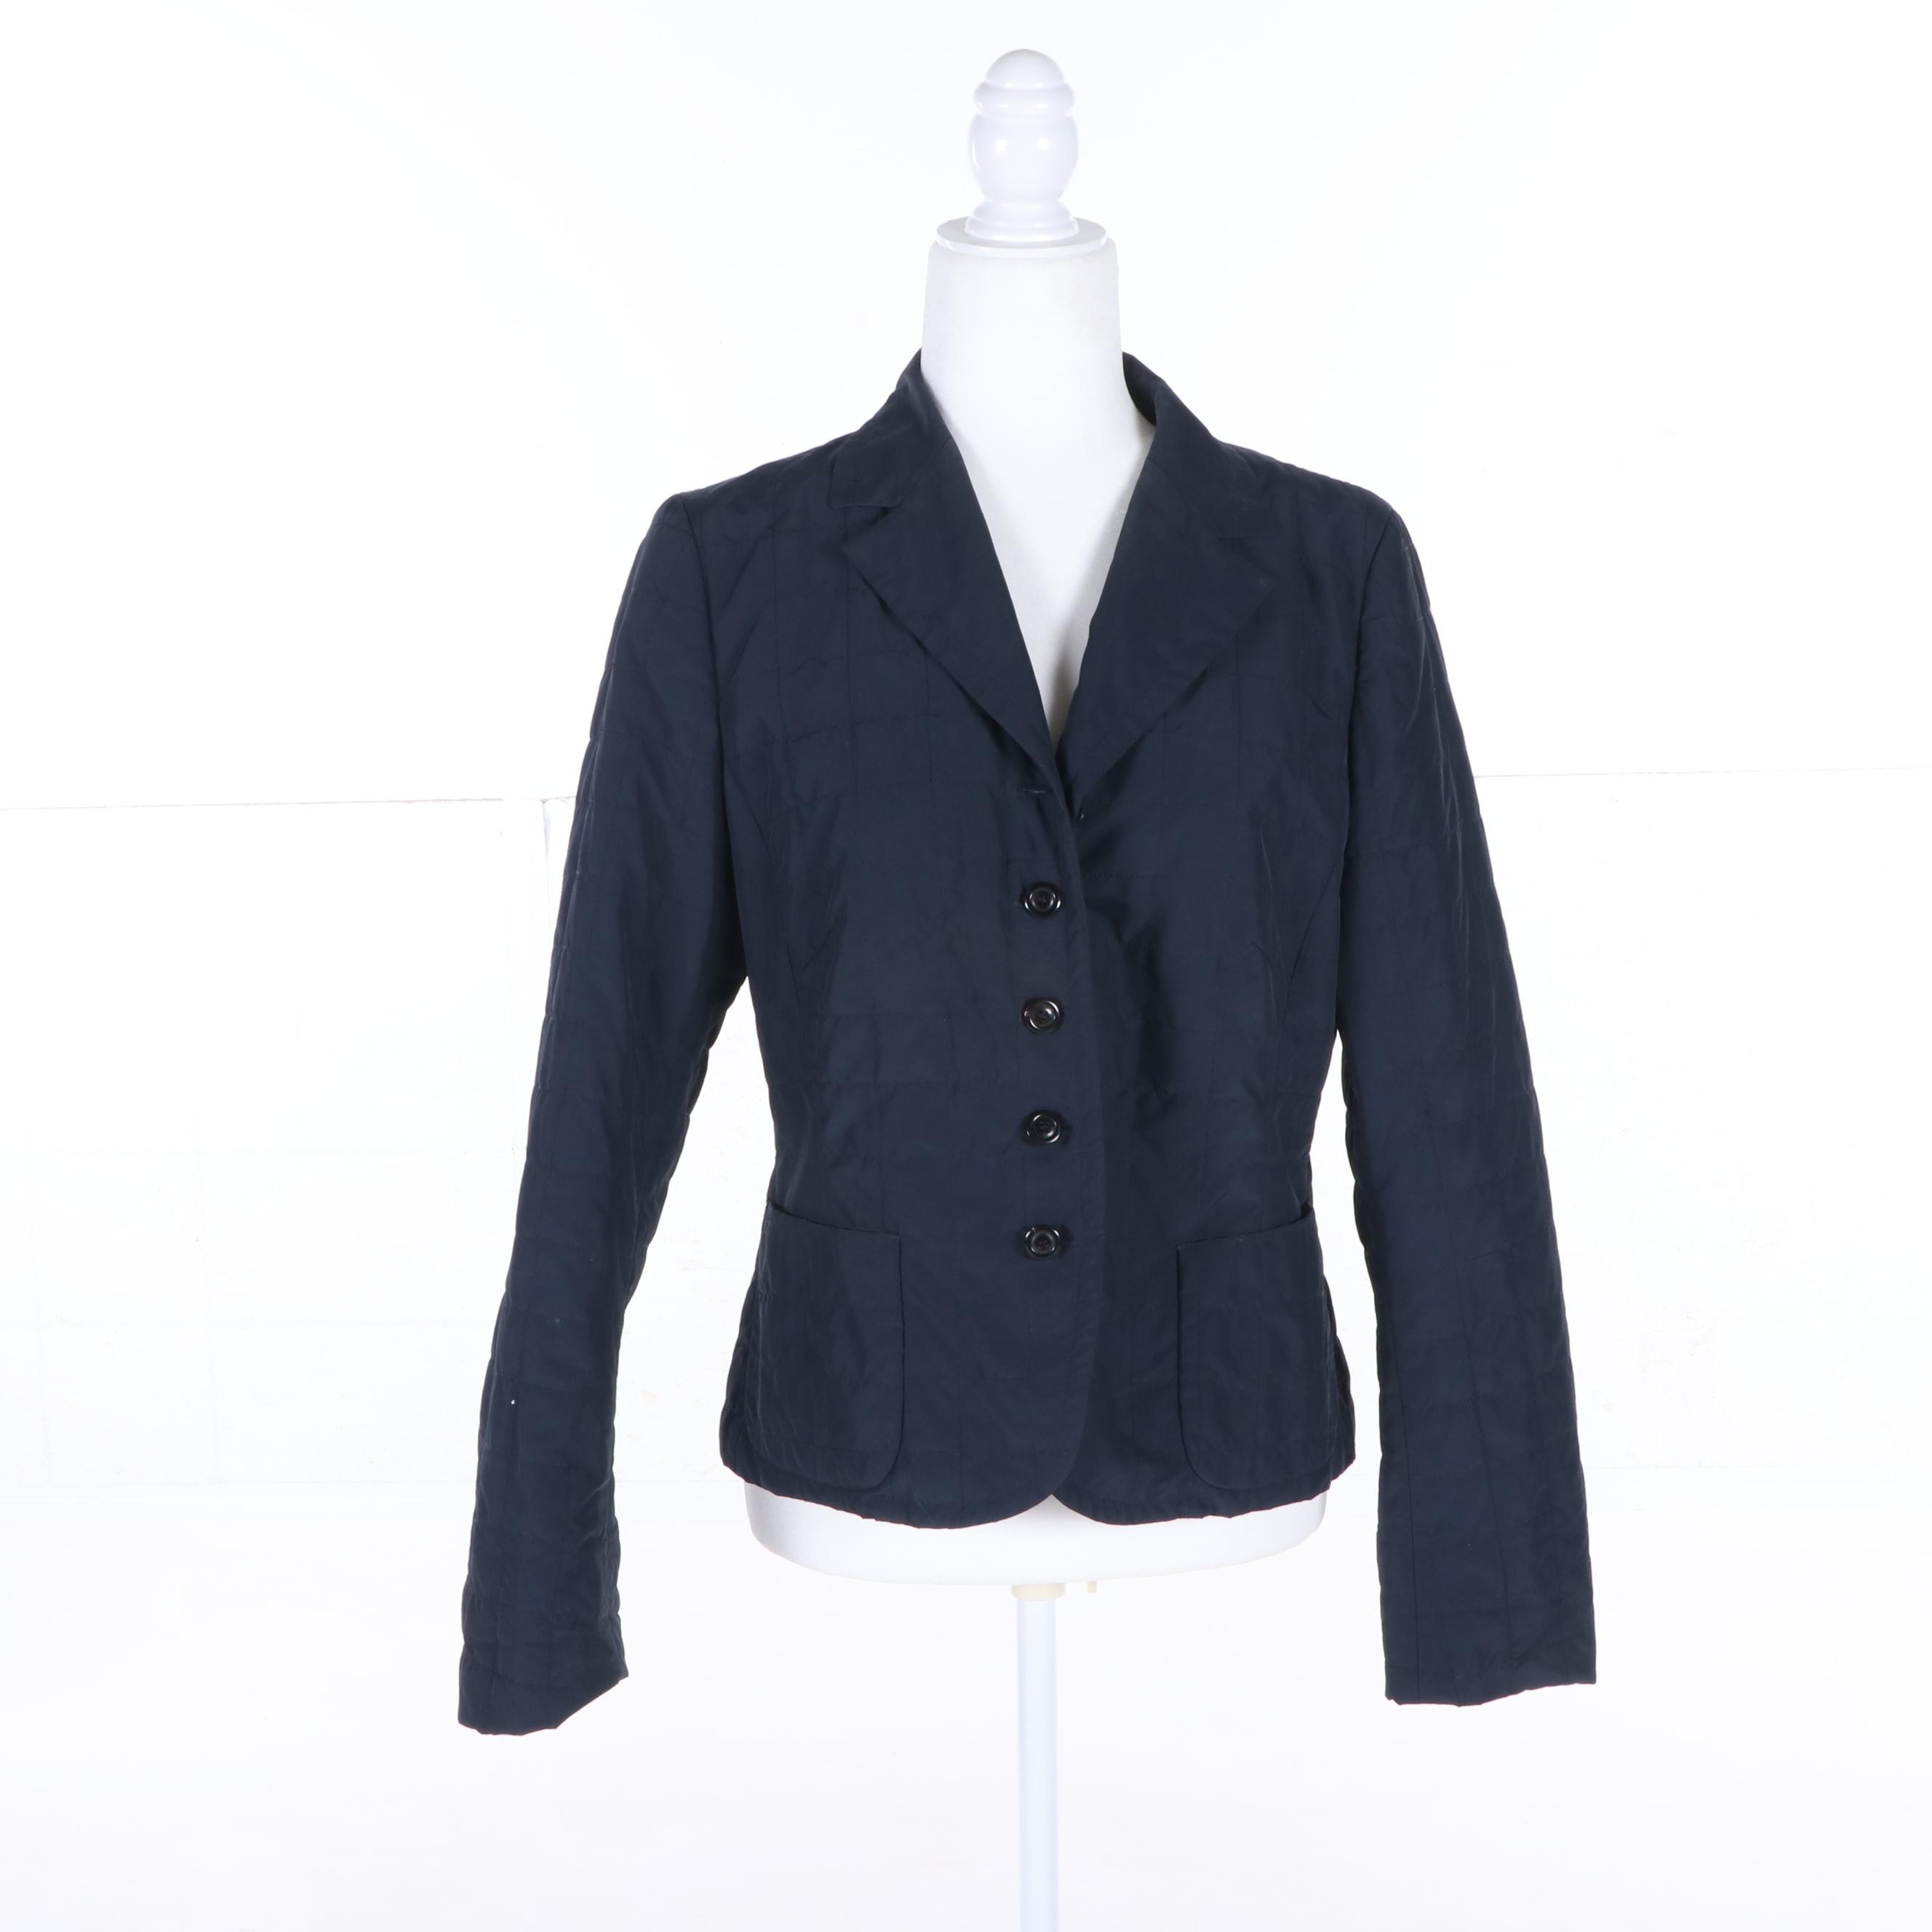 Women's Luciano Barbera Navy Blue Button-Front Jacket, Made in Italy